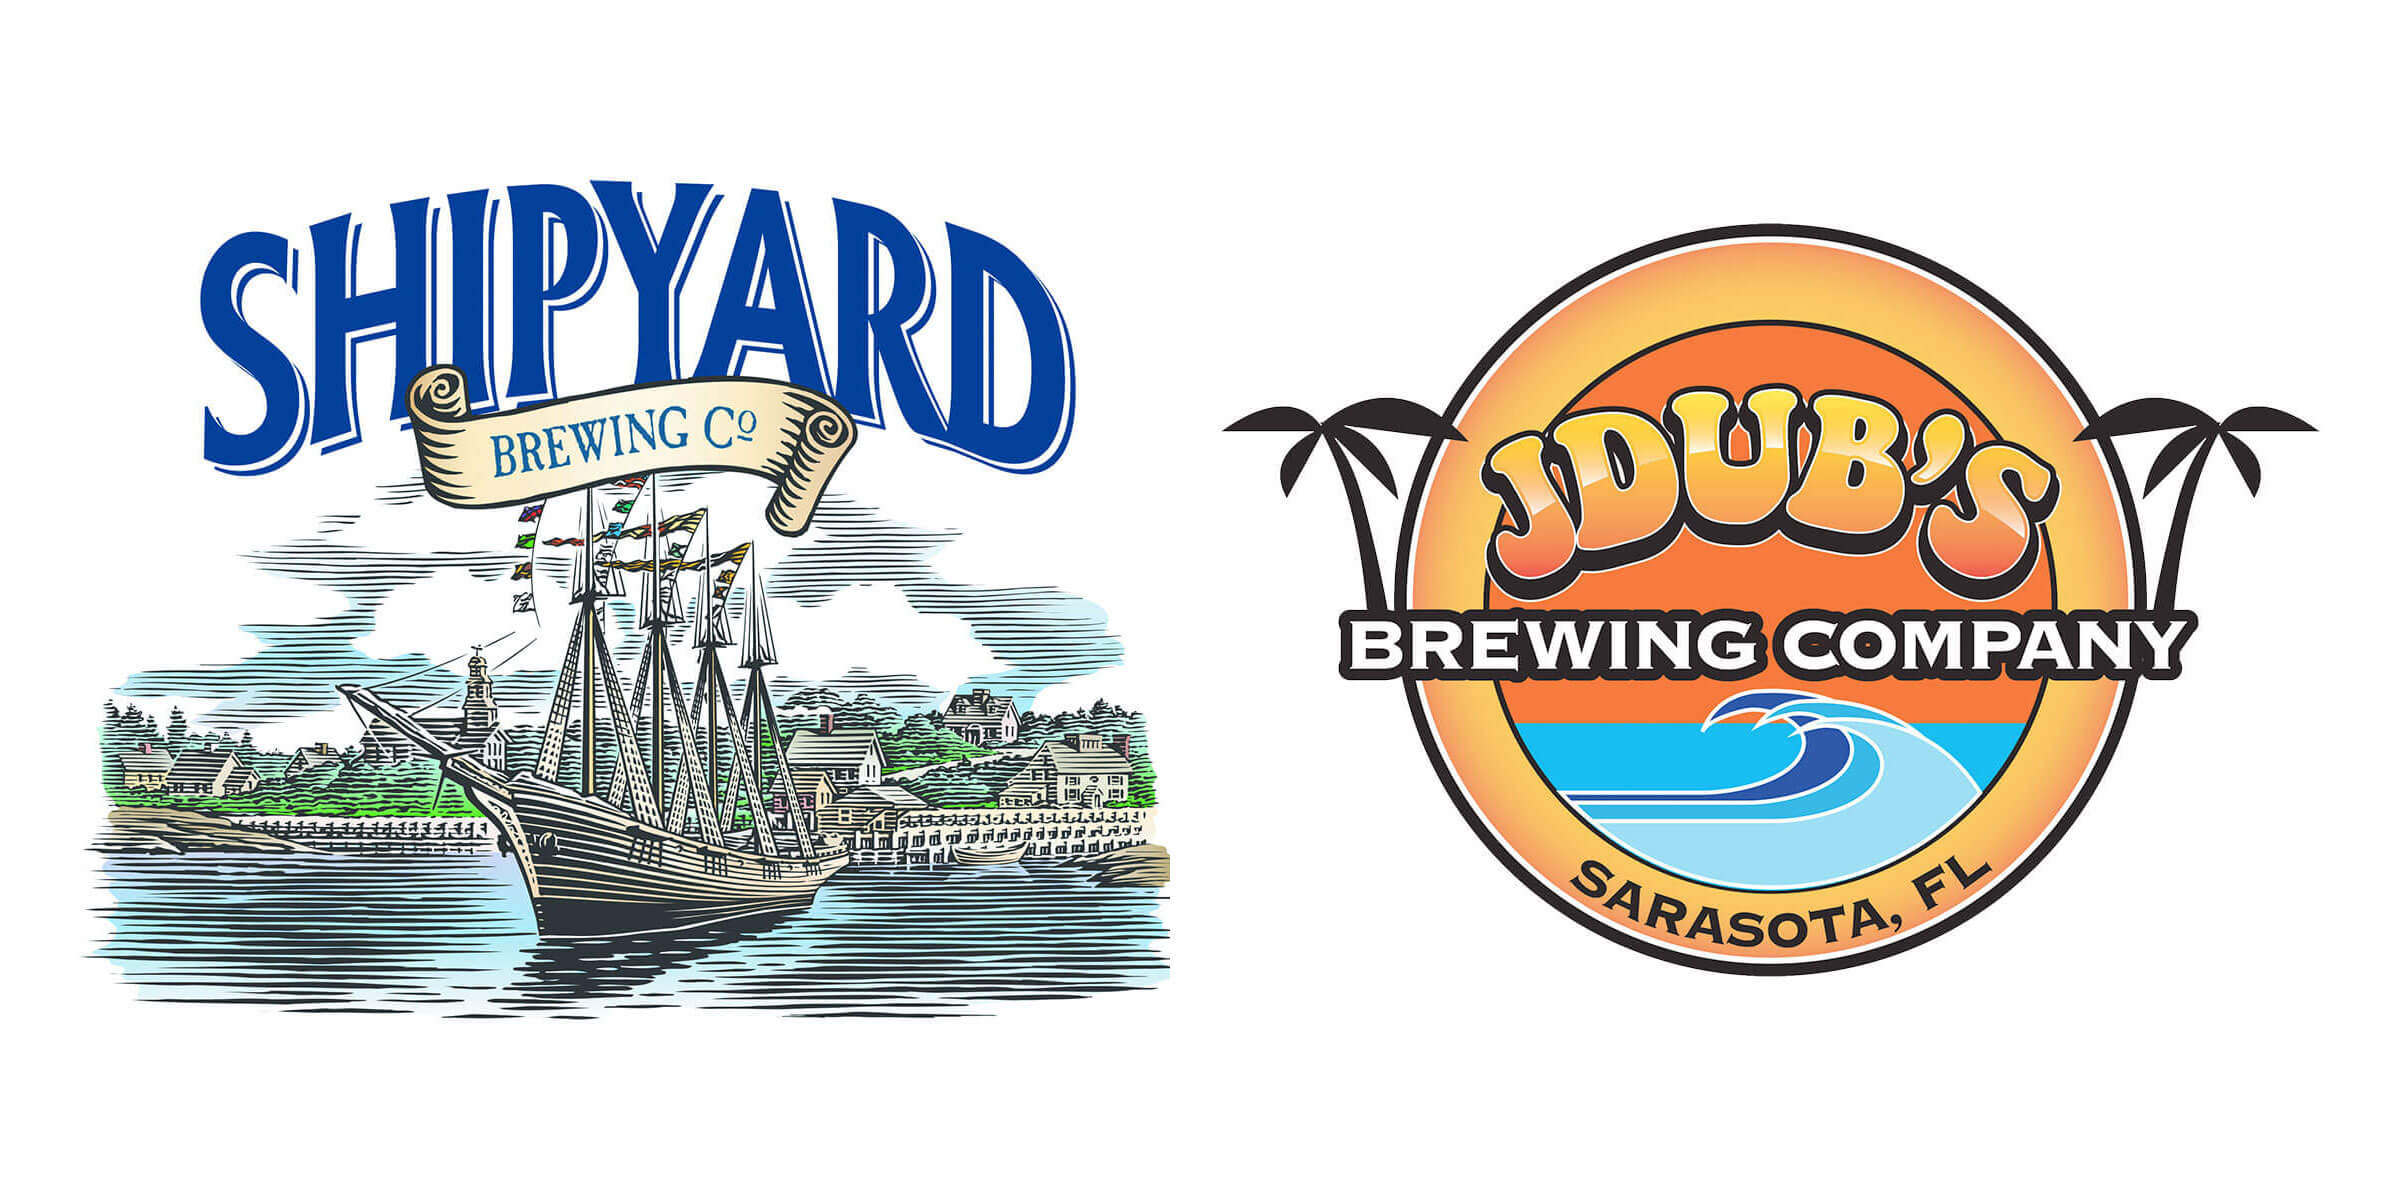 Orlando-based Brew Theory is excited to announce two major new production partners: Shipyard Brewing Co. and JDub's Brewing Company.